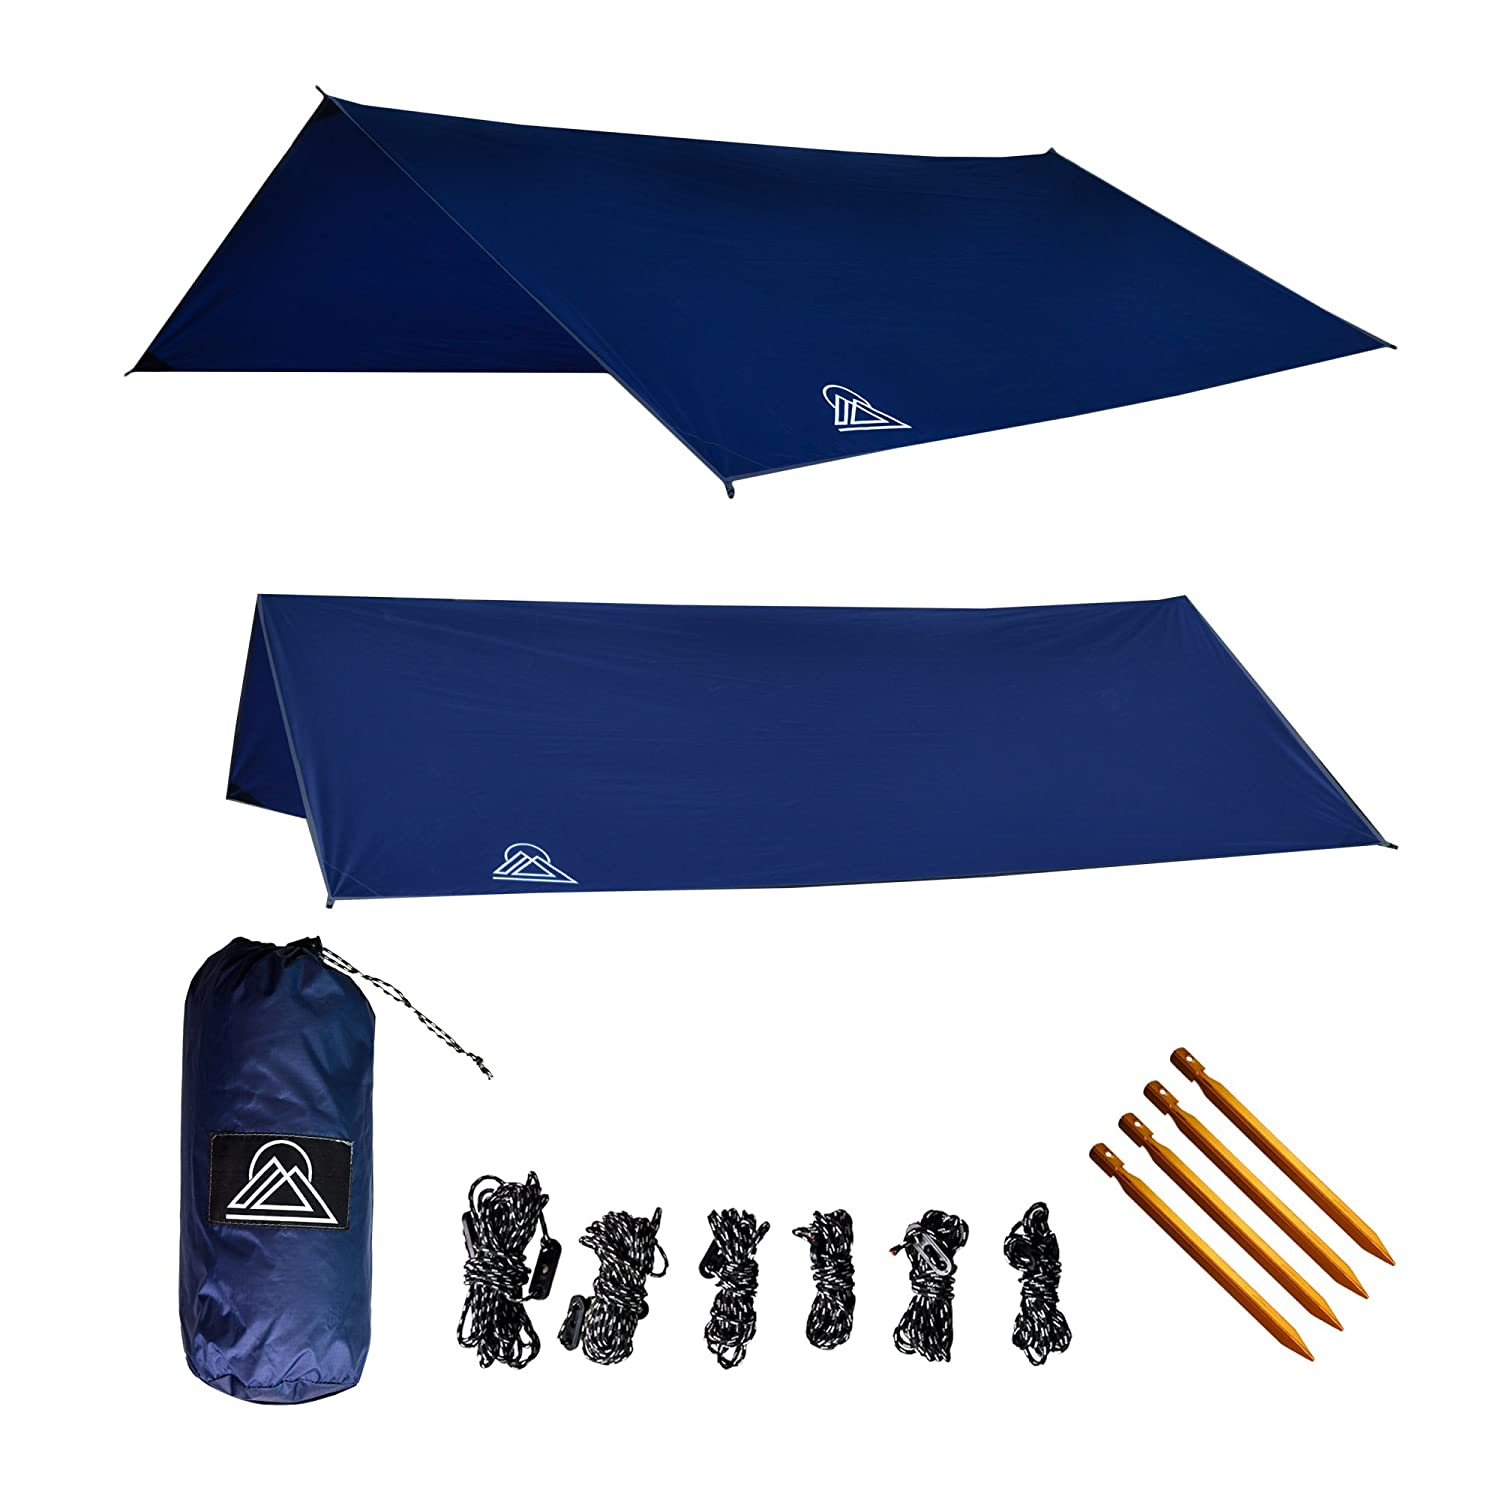 OAV Hammock Tarp Waterproof Rain Fly 40D Ripstop Real Nylon, Lightweight, Includes Stakes Ropes Attached to Tarp, Use for Shelter or Sunshade, 10 – Durable, Easy Set Up